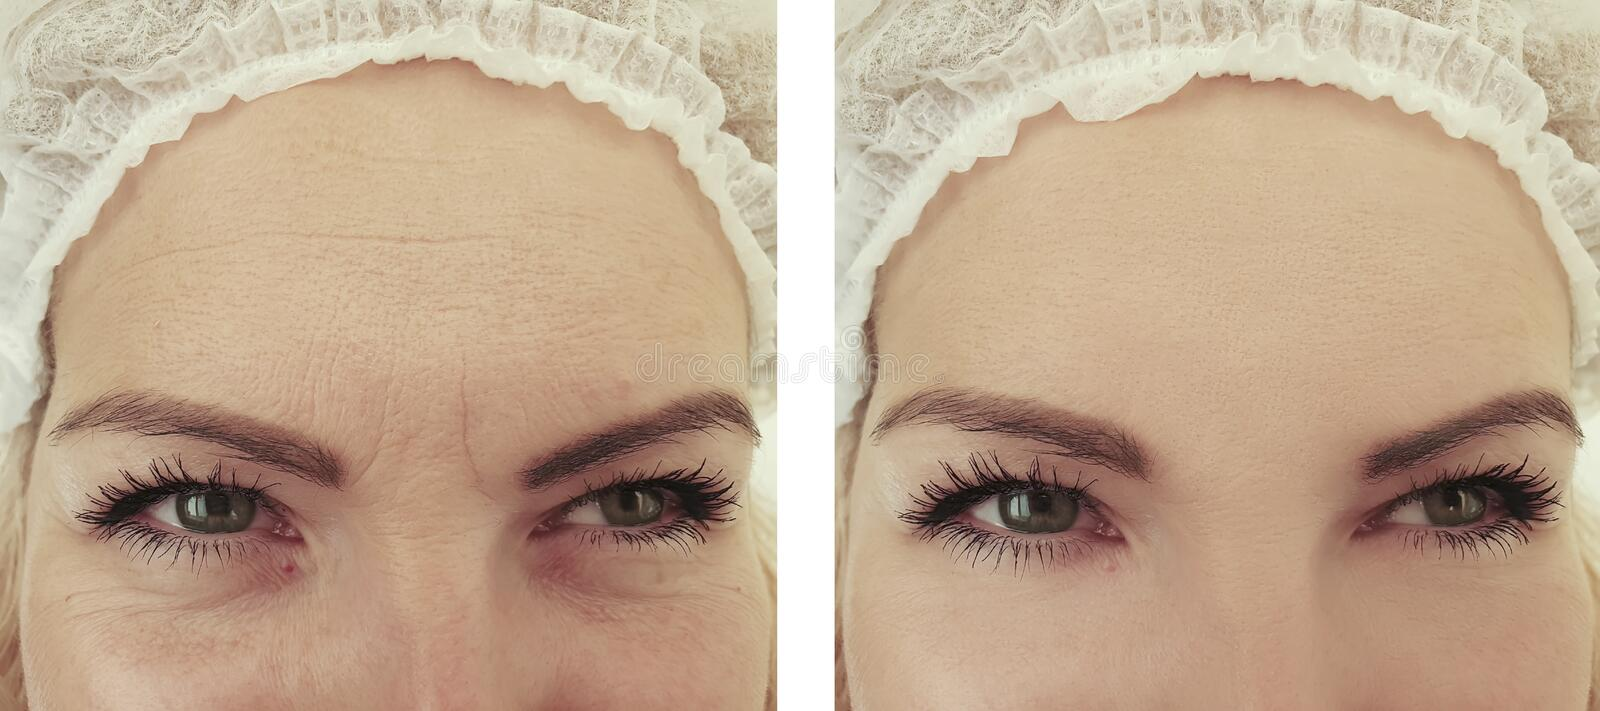 Woman wrinkles before and after rejuvenation mature correction removal treatment procedures. Woman wrinkles before  after removal procedures treatment mature royalty free stock image